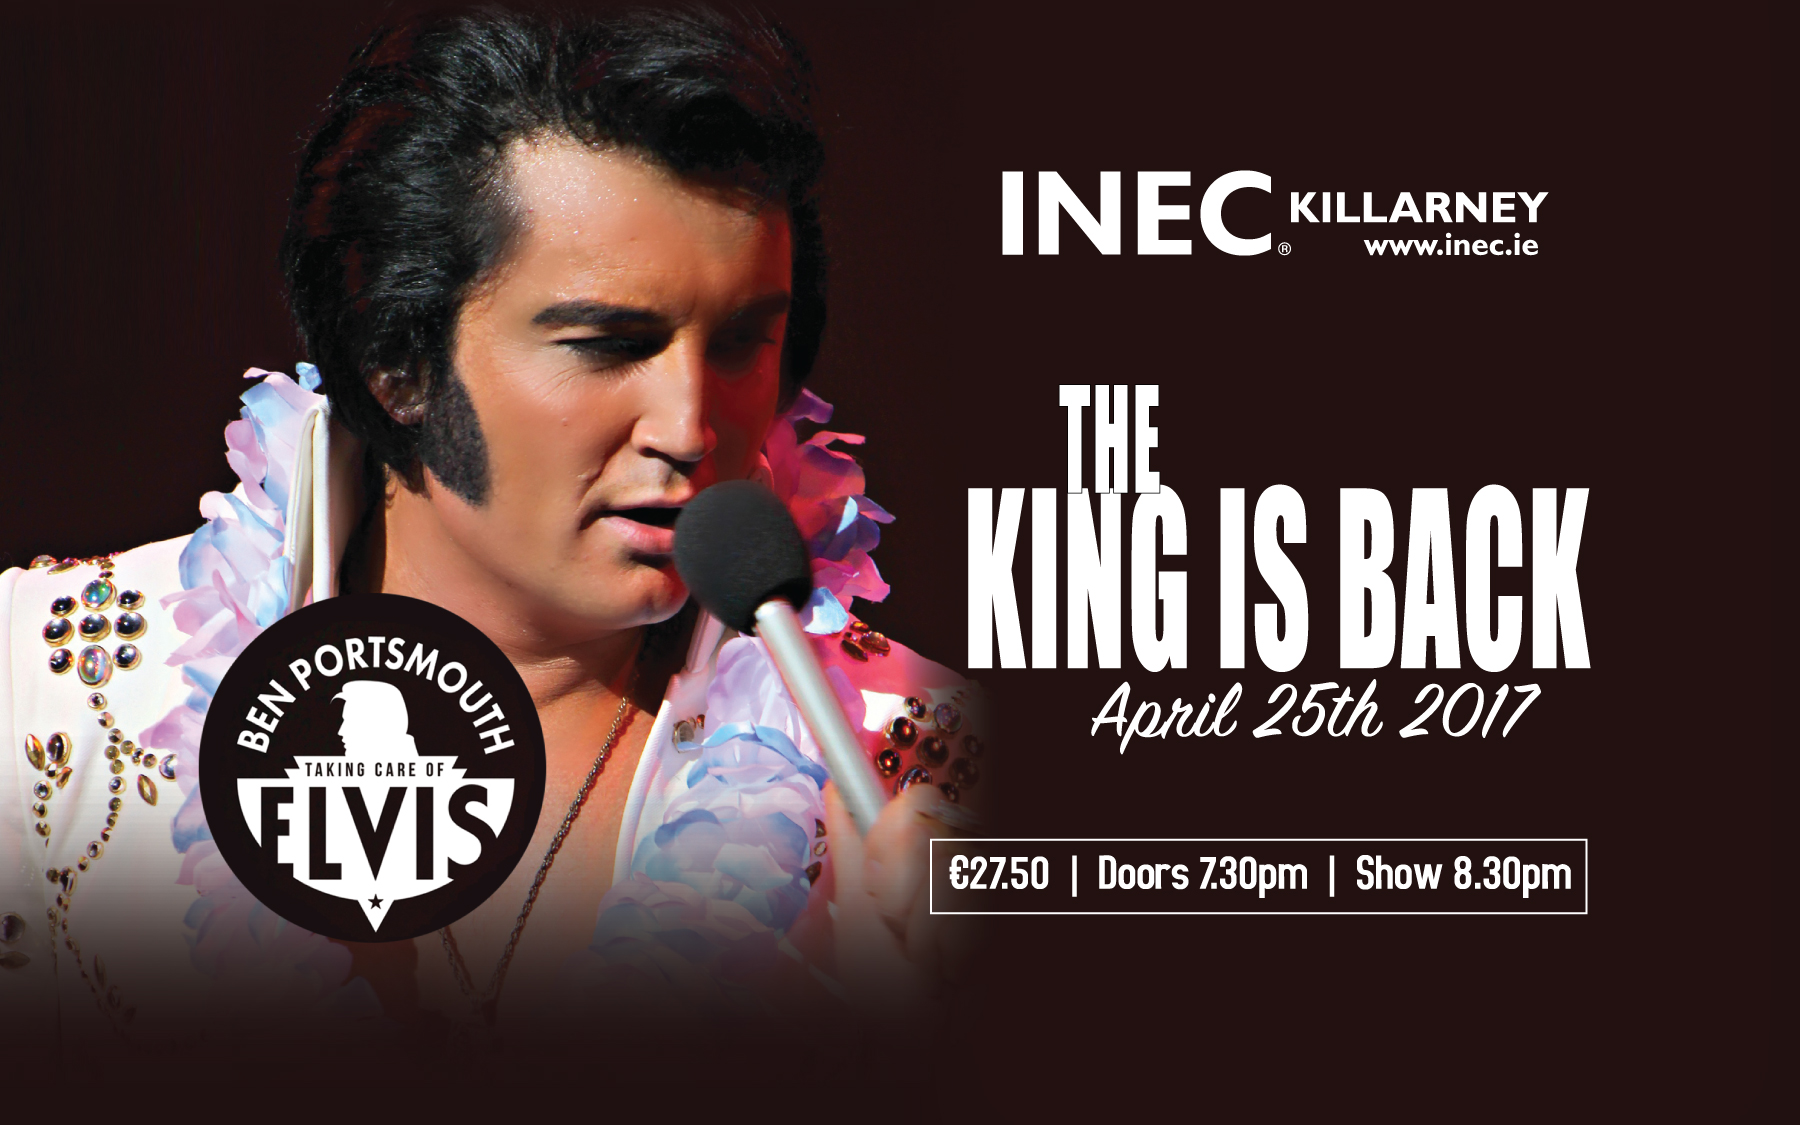 Ben Portsmouth as Elvis comes to the INEC Killarney April 25th